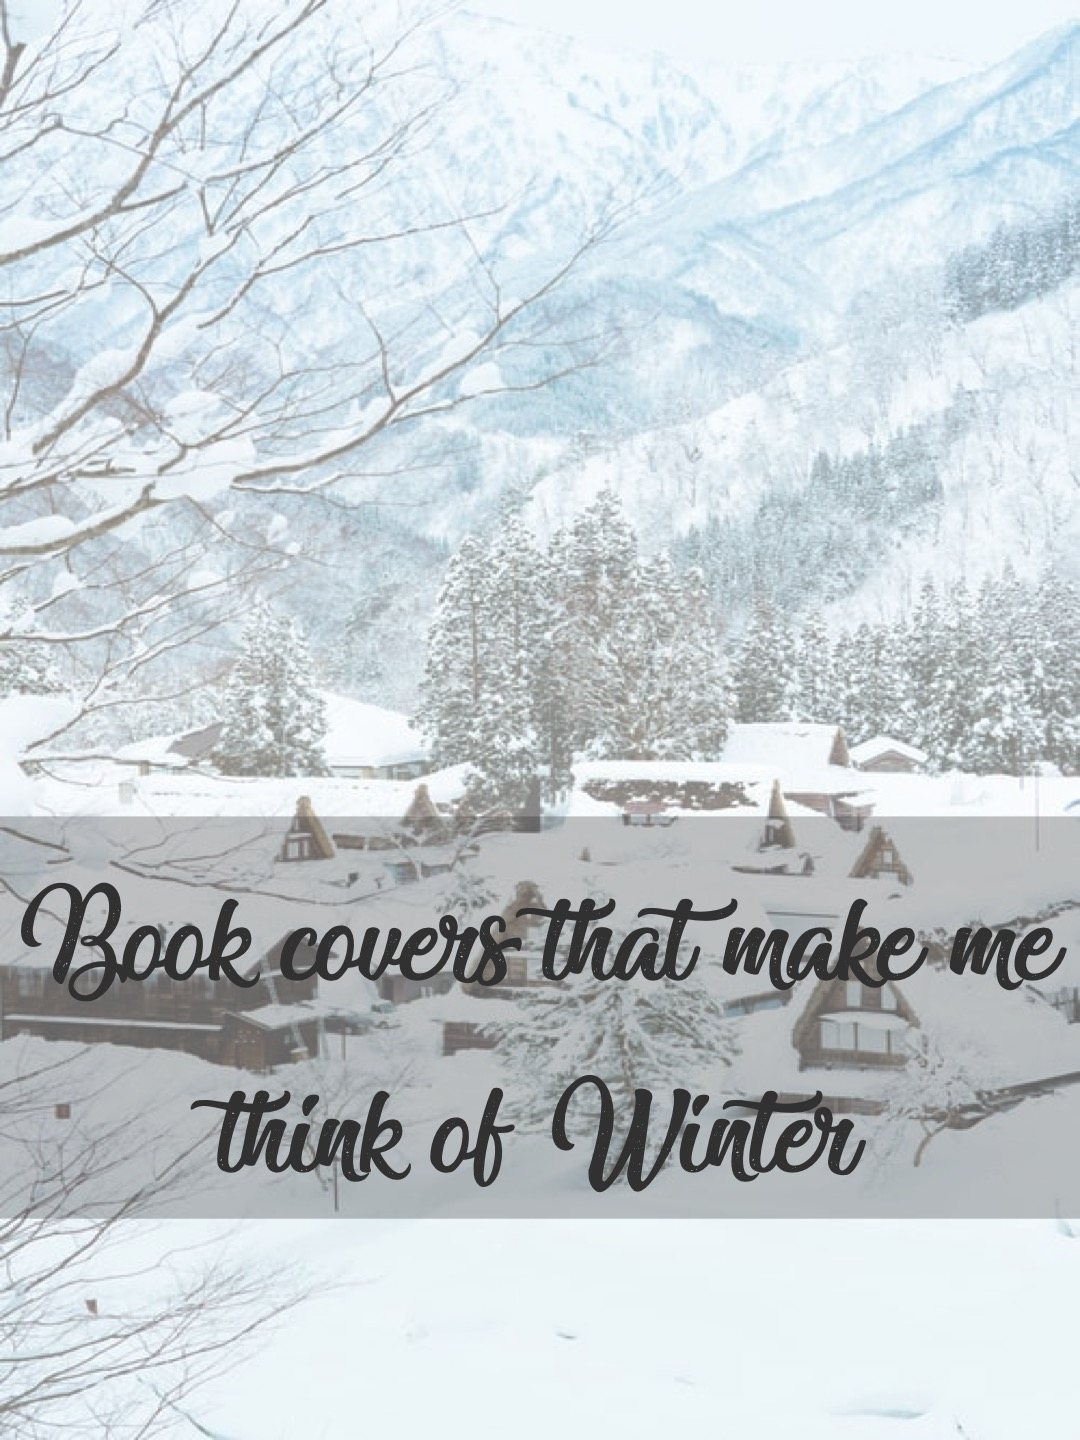 Book covers that make me think of Winter